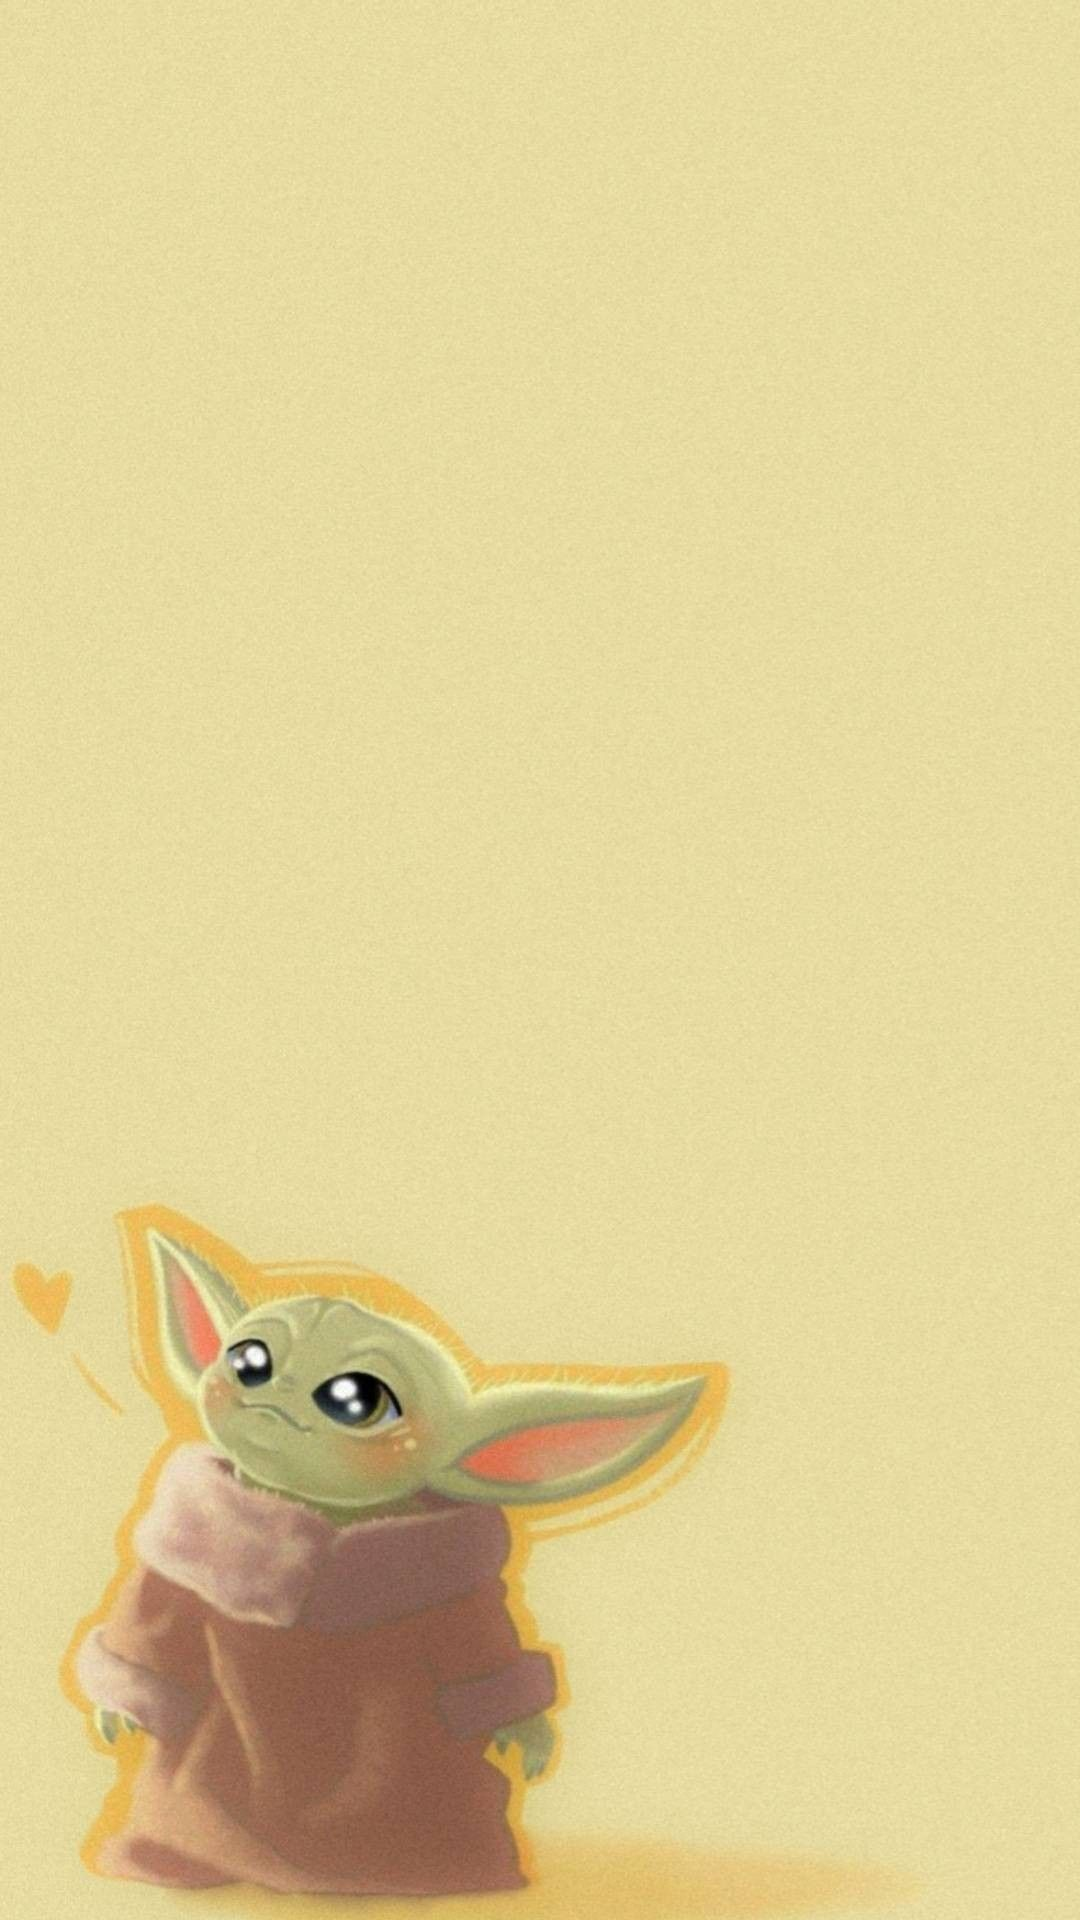 Pin by Angel Mommy on Baby Yoda in 2020 Yoda wallpaper